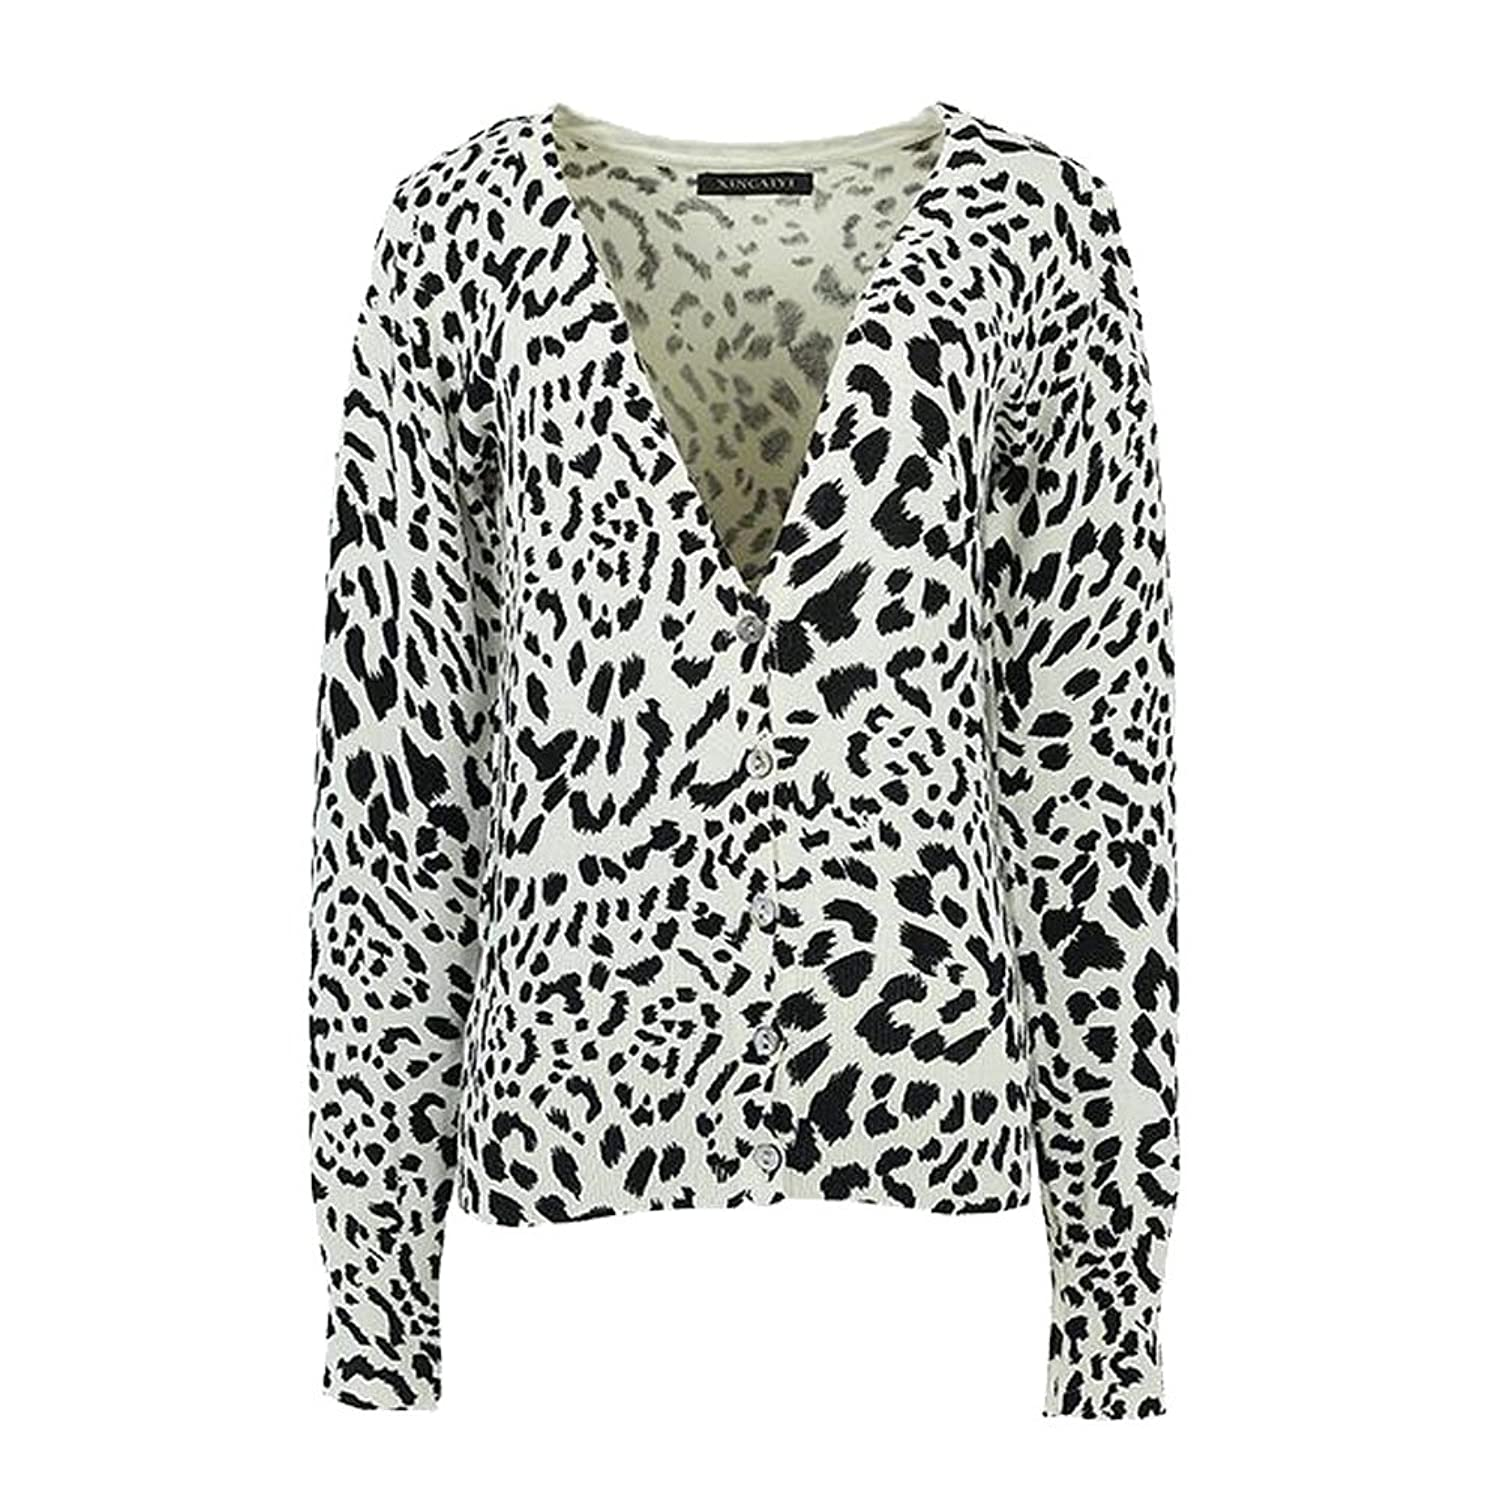 Women's petite leopard printing short V-neck cardigan sweater